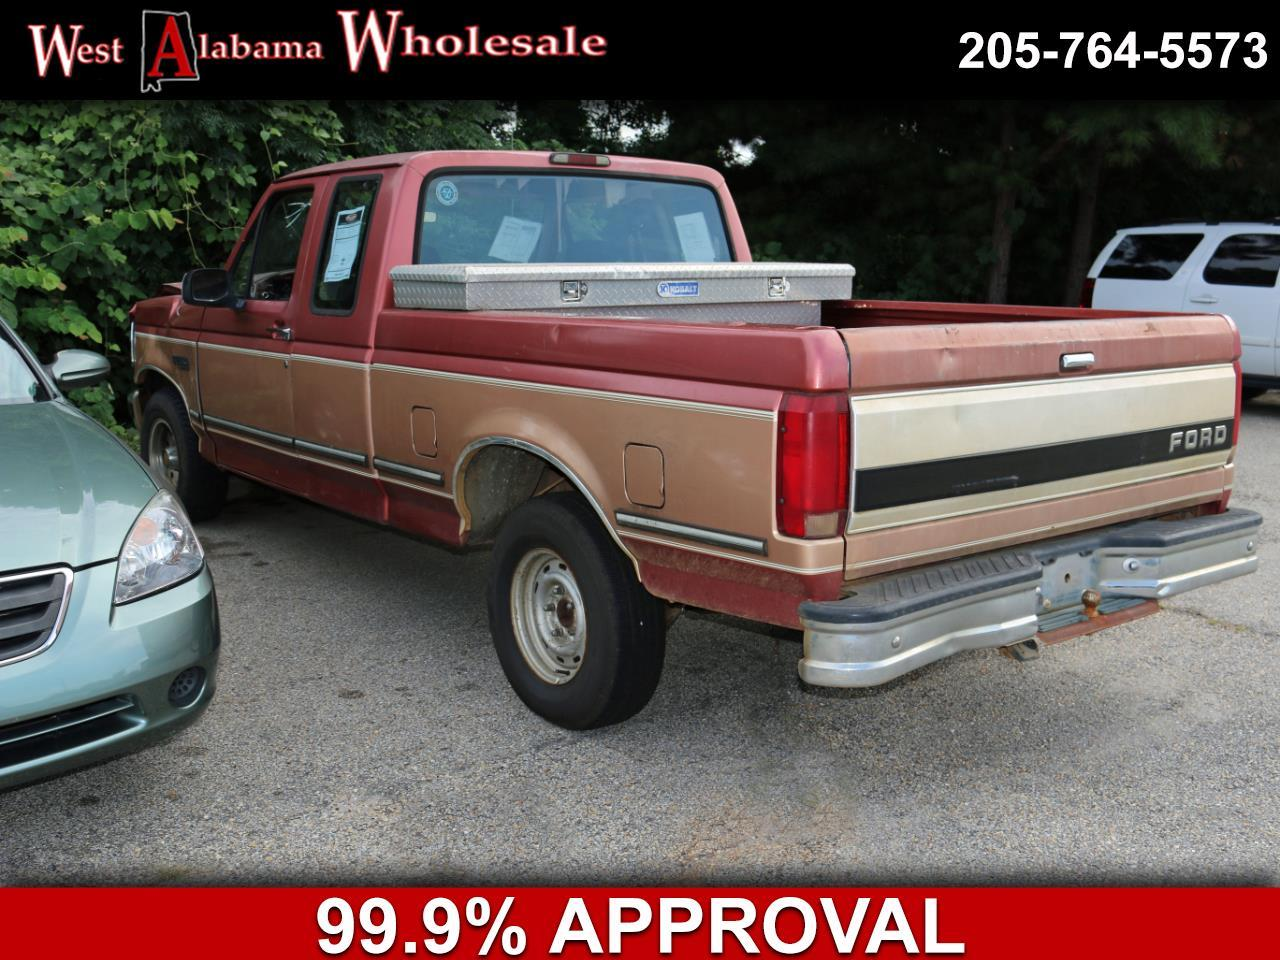 1994 Ford F-150 $500